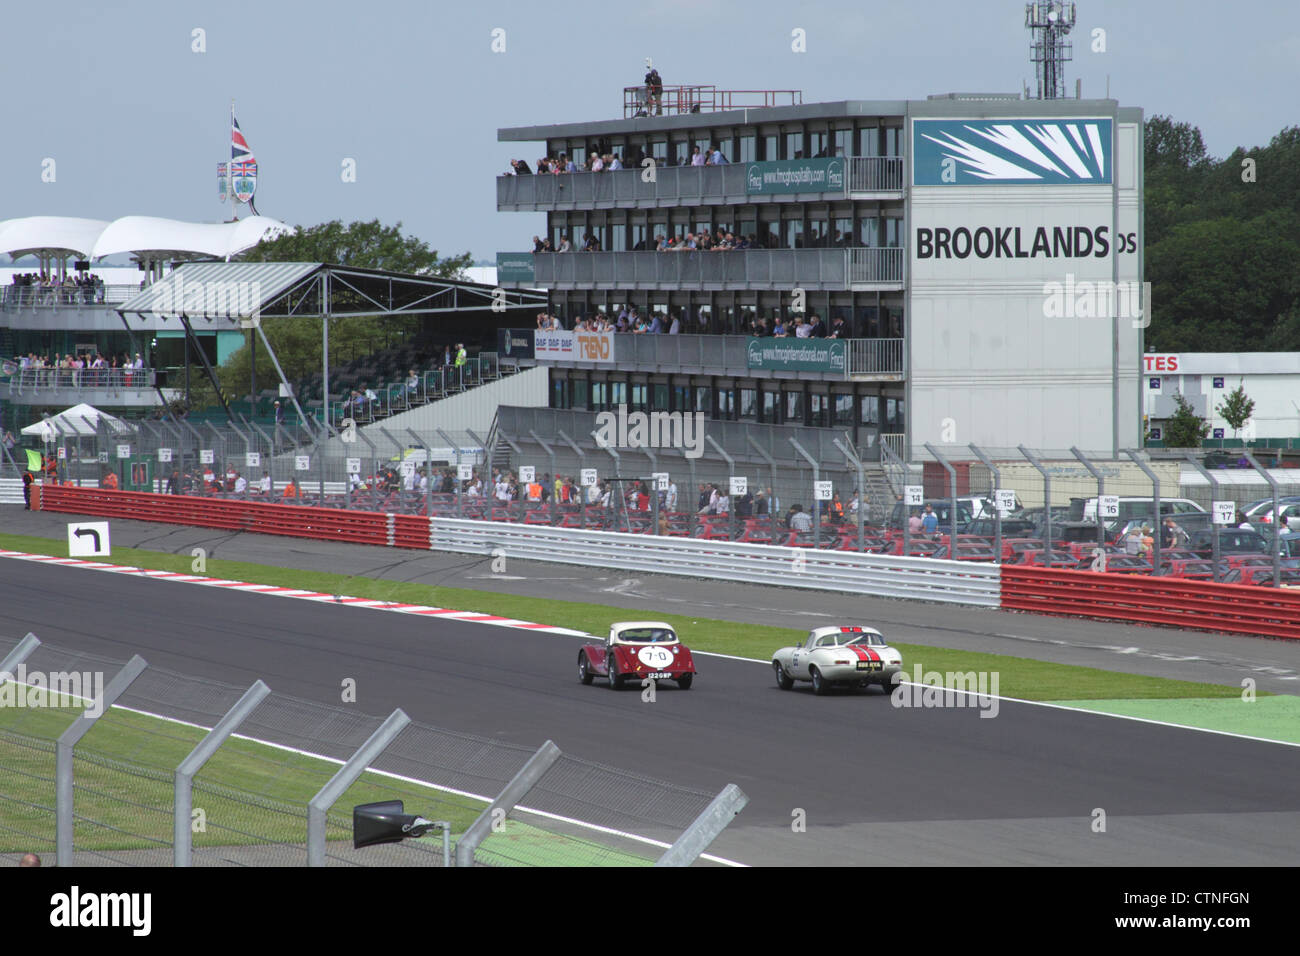 Race at RAC Tourist Trophy for Historic Cars (pre-63 GT) Silverstone Classic July 22 2012 view towards Brooklands - Stock Image